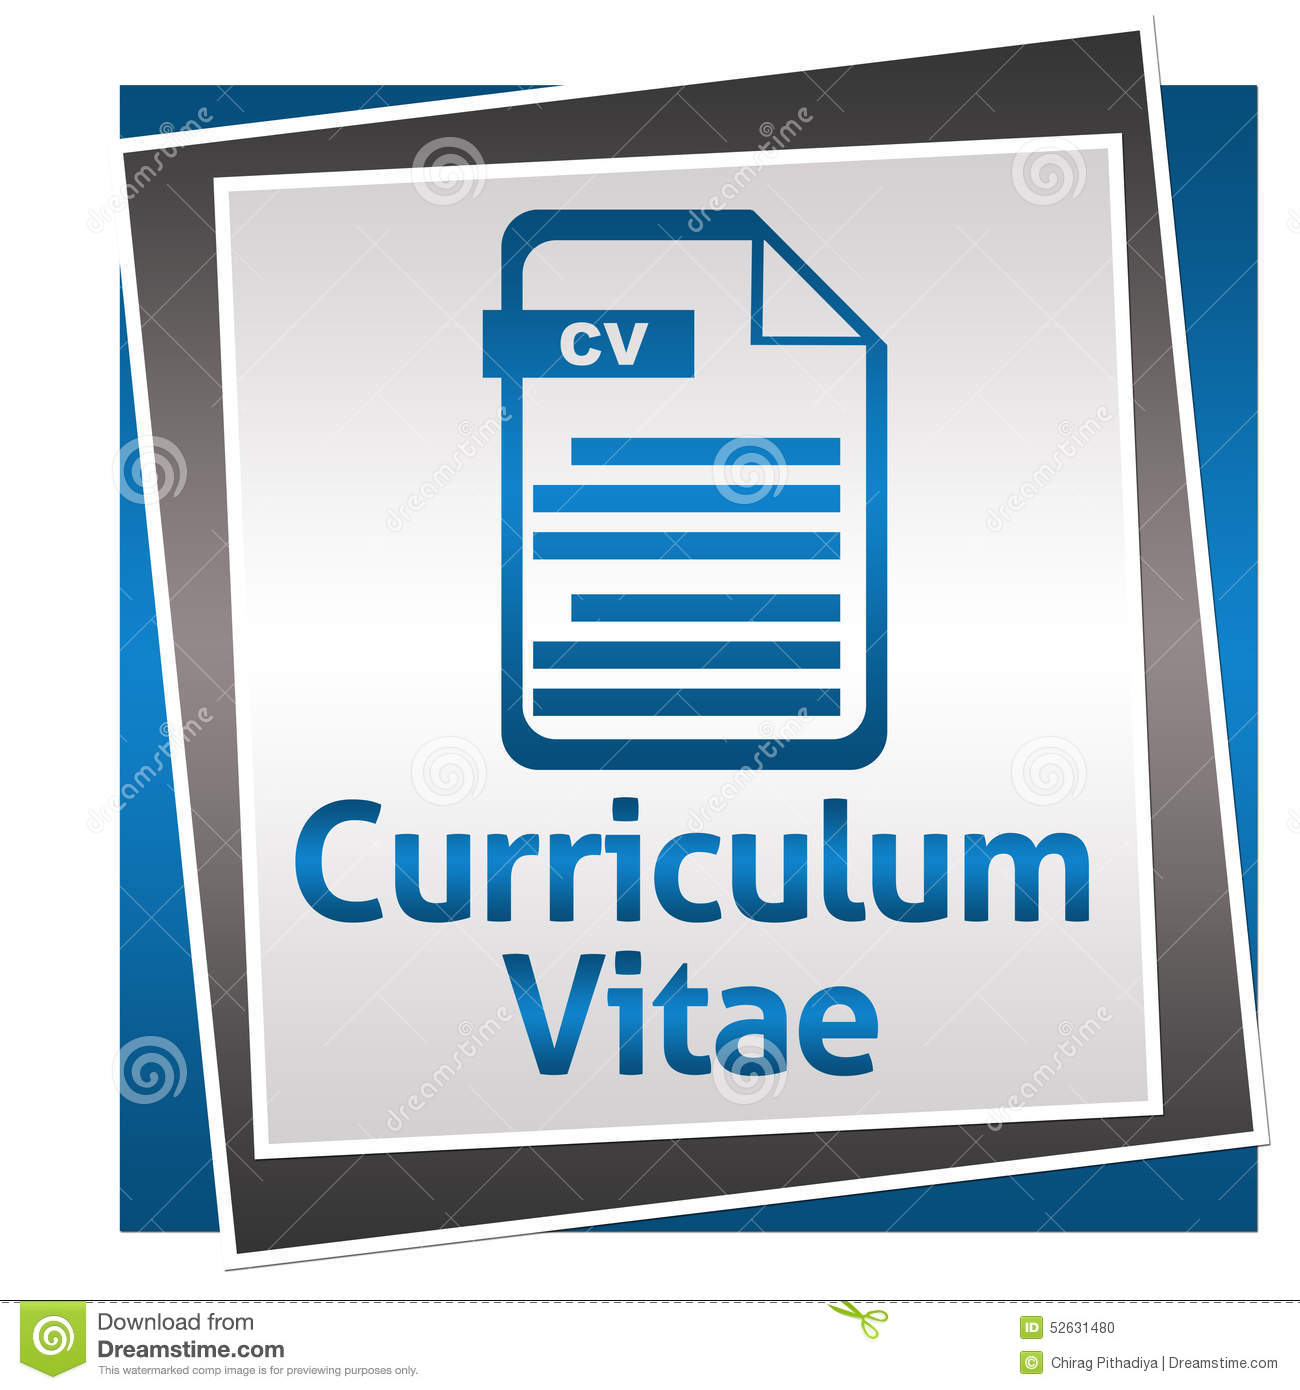 curriculum vitae blue grey square with icon stock illustration